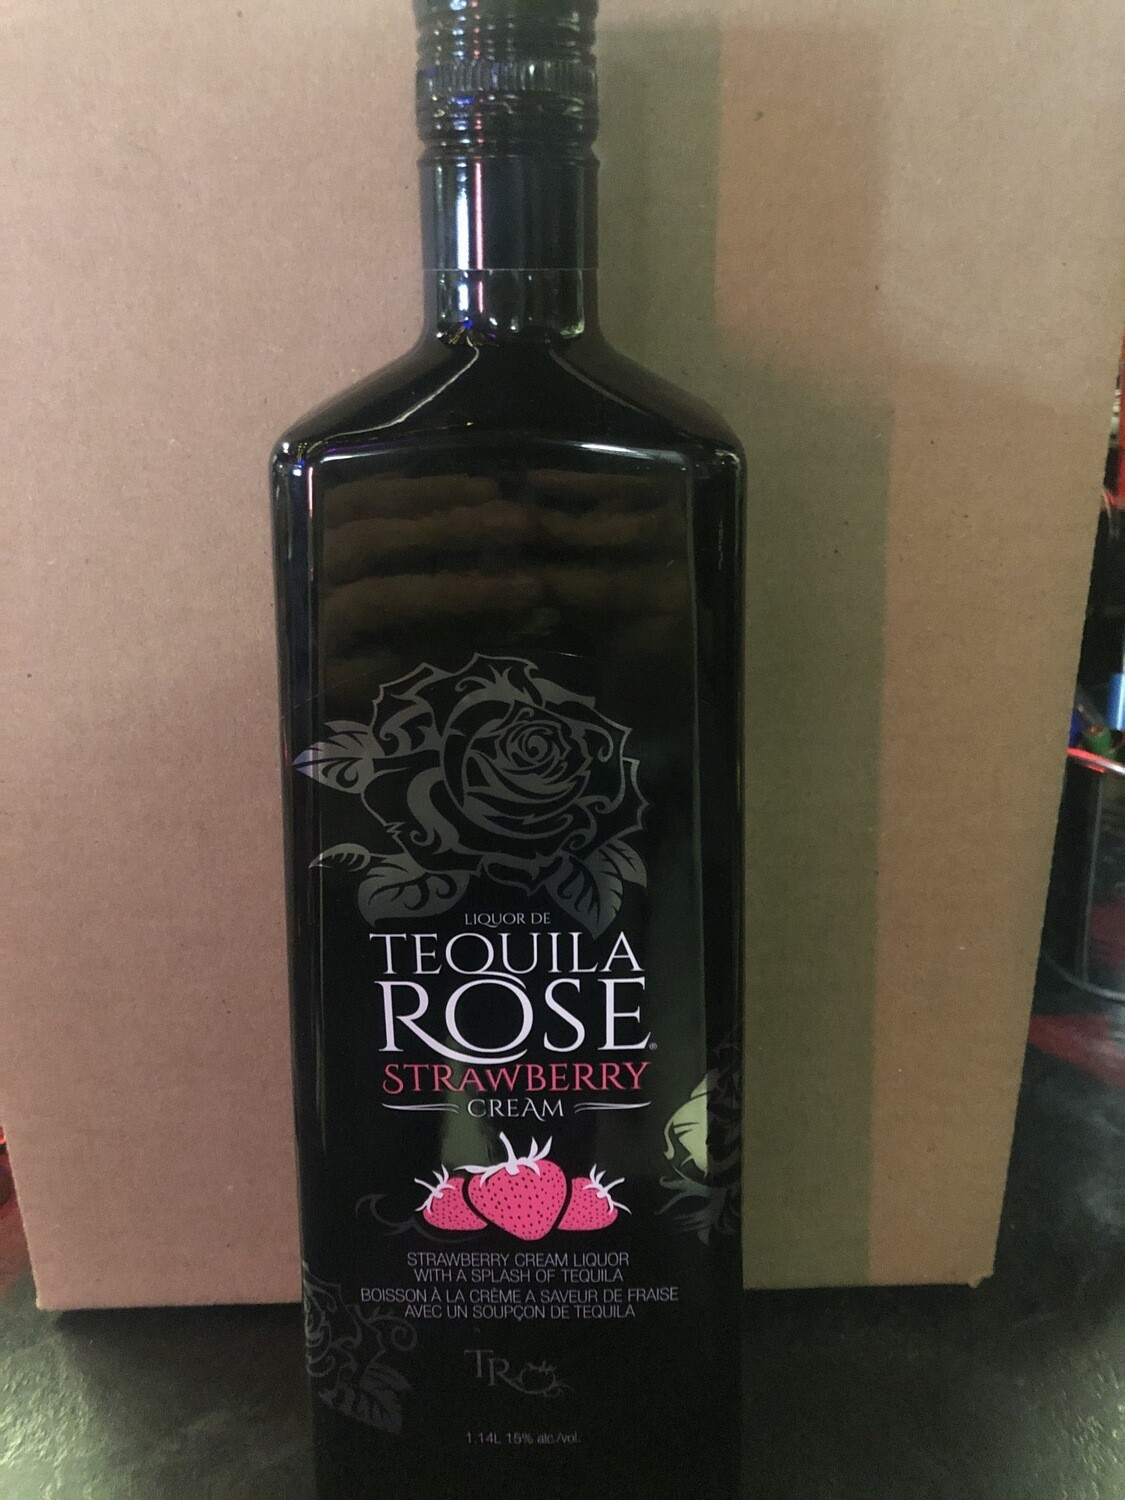 Tequila Rose - 1.14 L